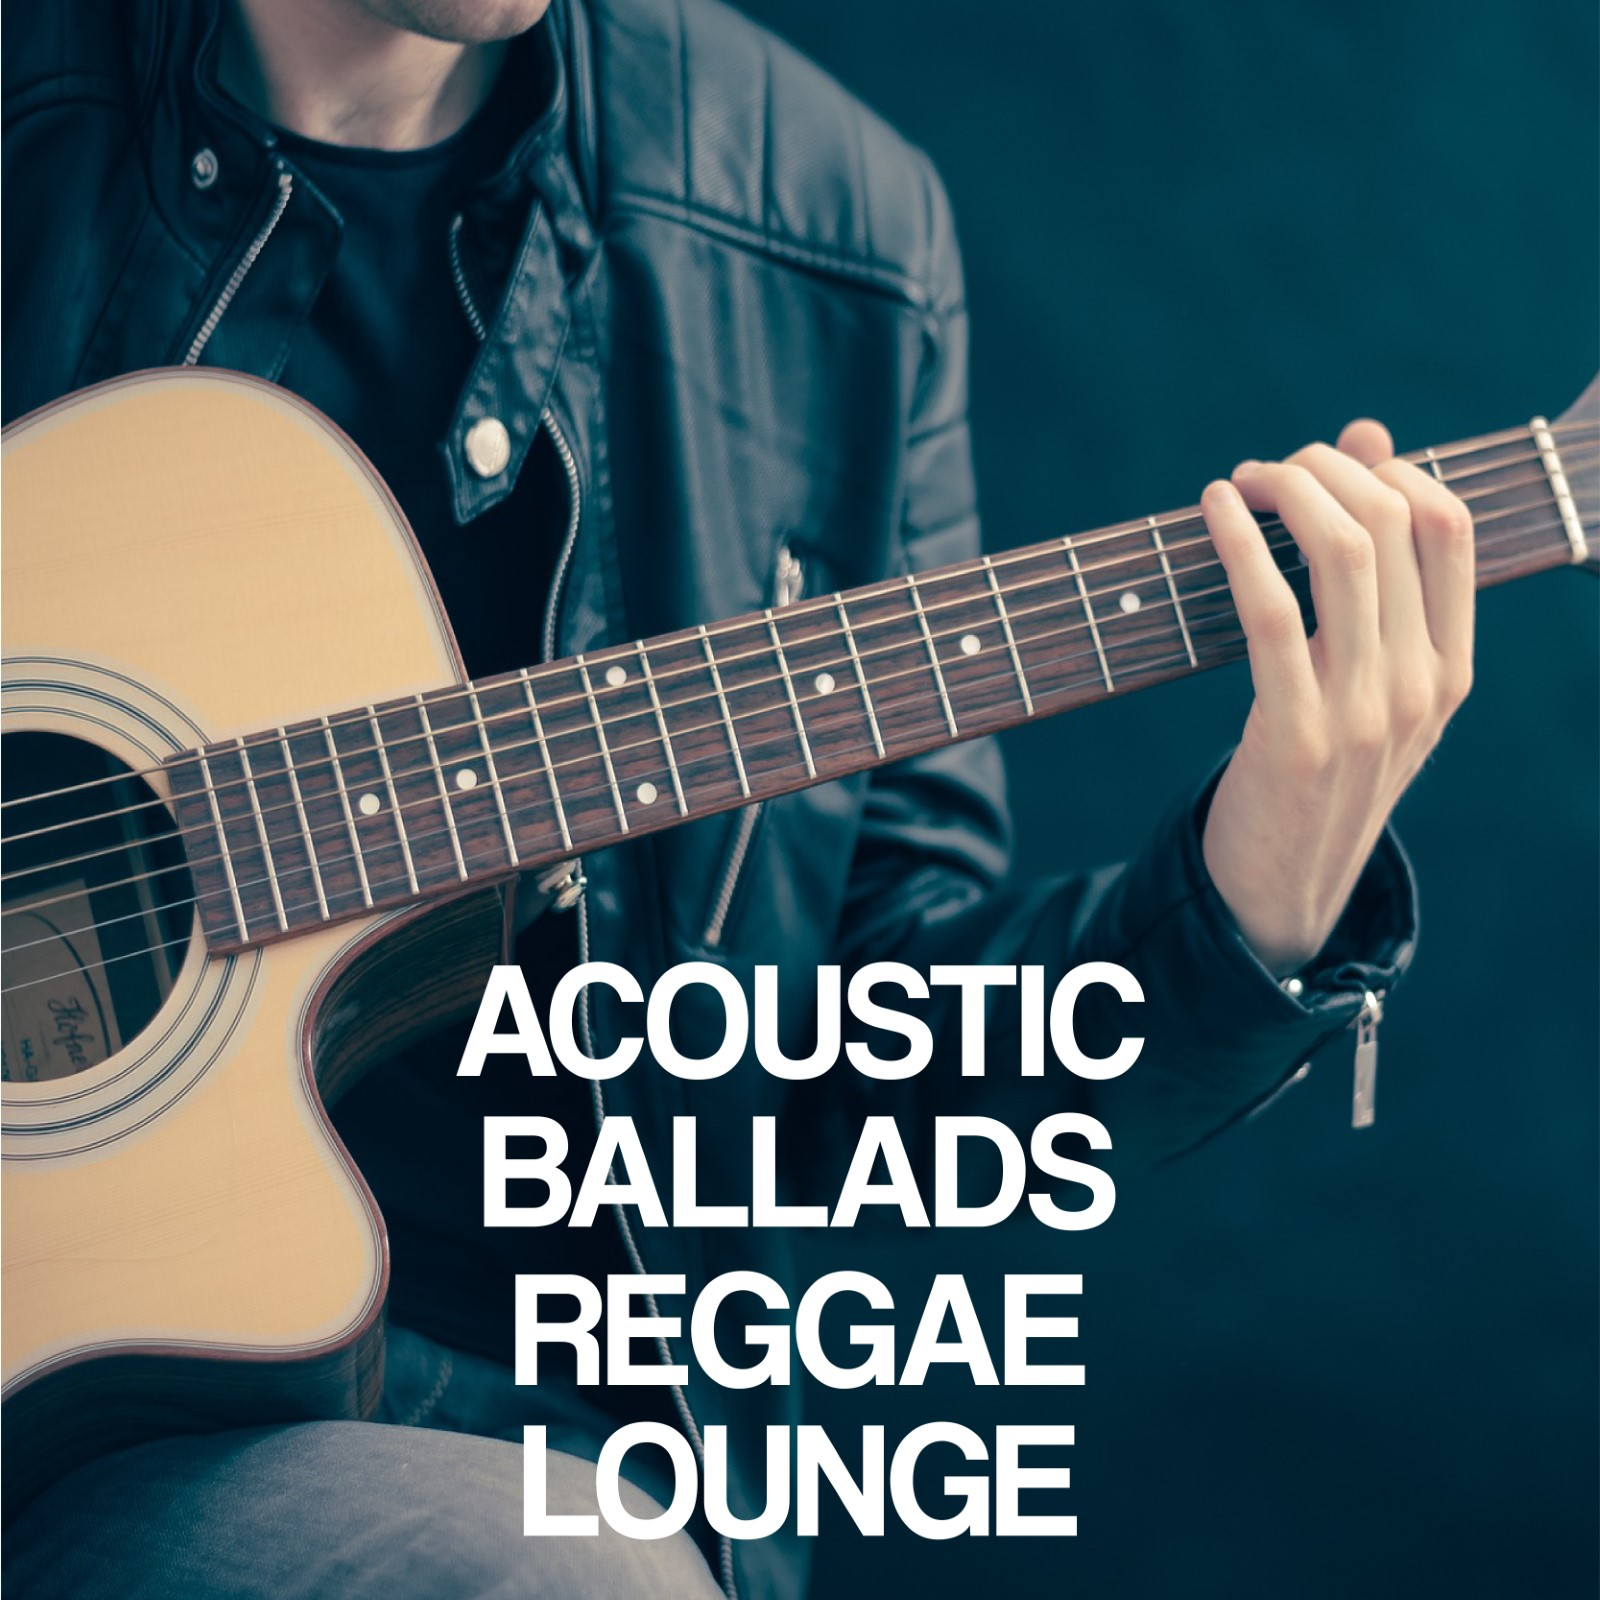 - Acoustical country/ballad/bluegrass tracks with classical guitars and beautiful melodies.